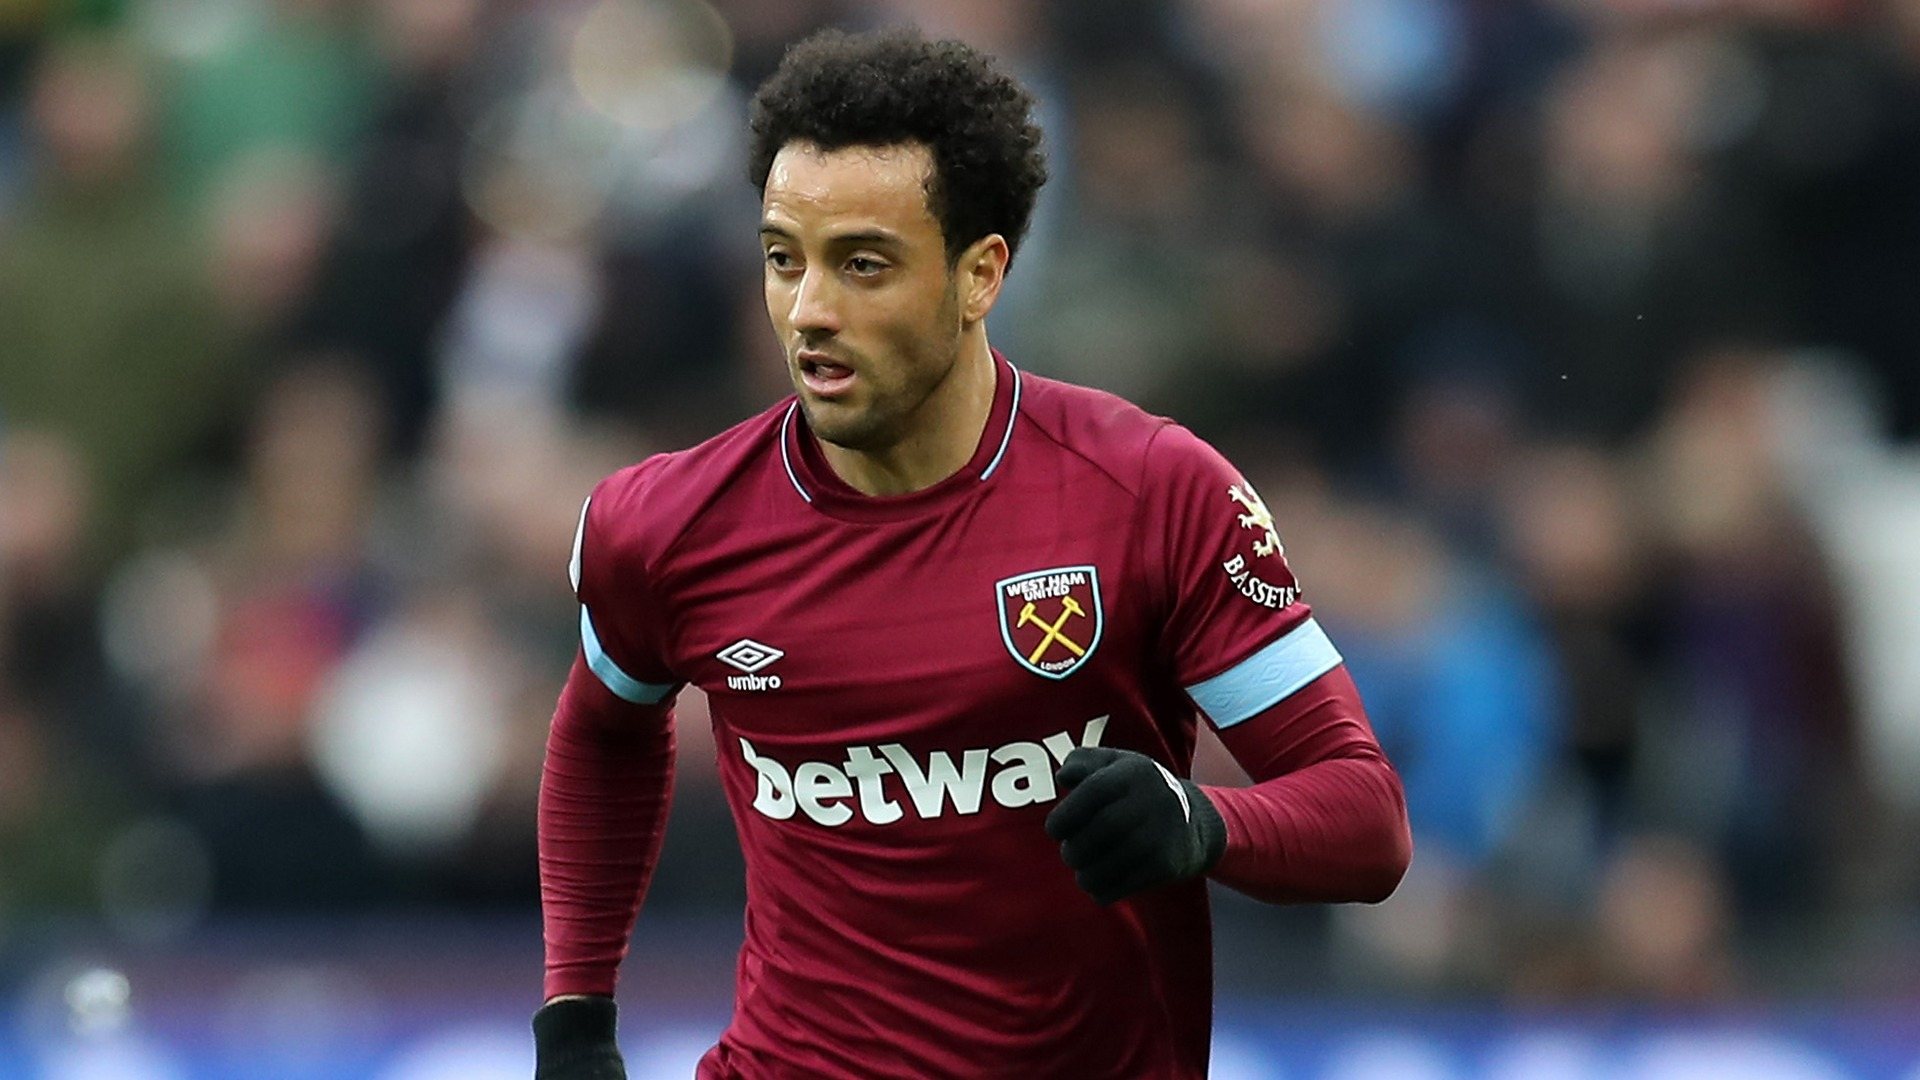 West Ham want to be invincible at home, says Felipe Anderson